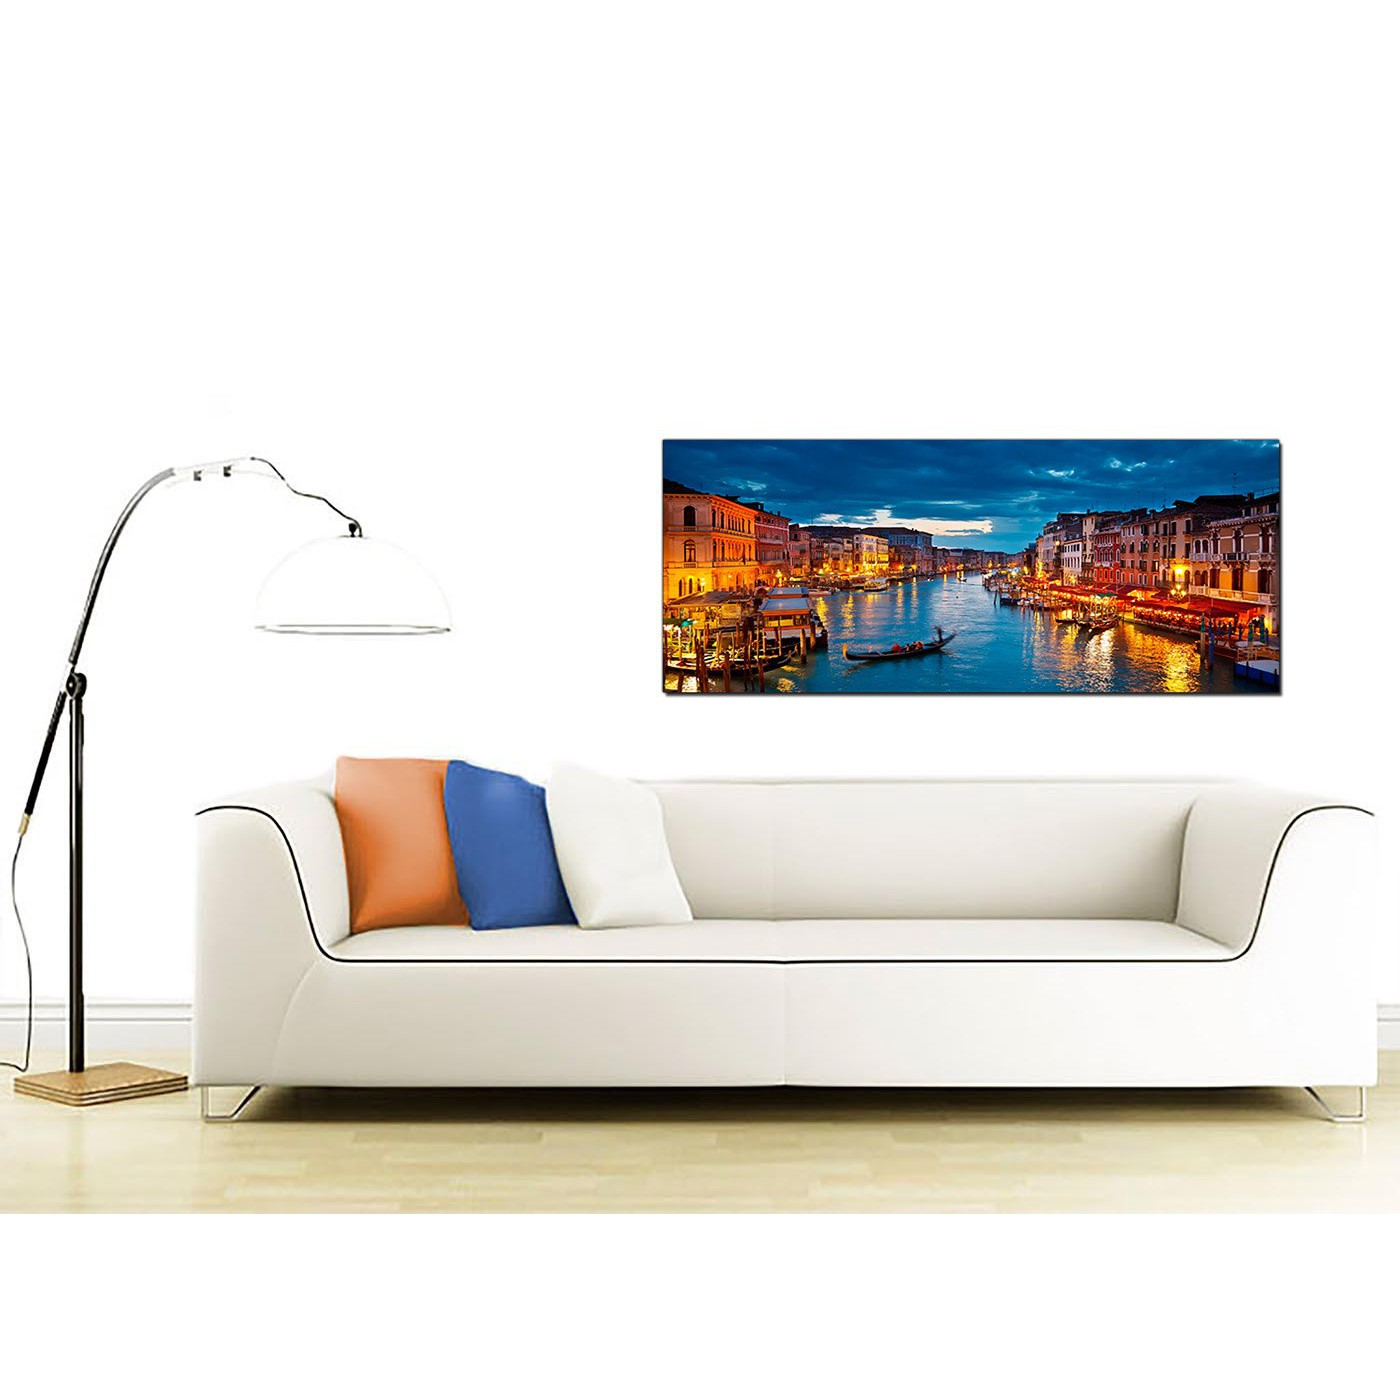 Cheap Canvas Prints of Venice Italy for your Living Room